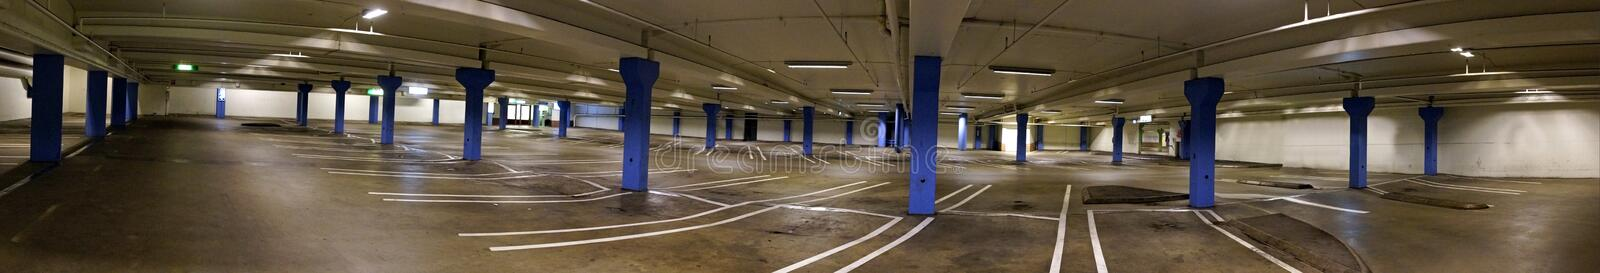 Empty indoor car park. Panoramic view of empty indoor car park stock photography